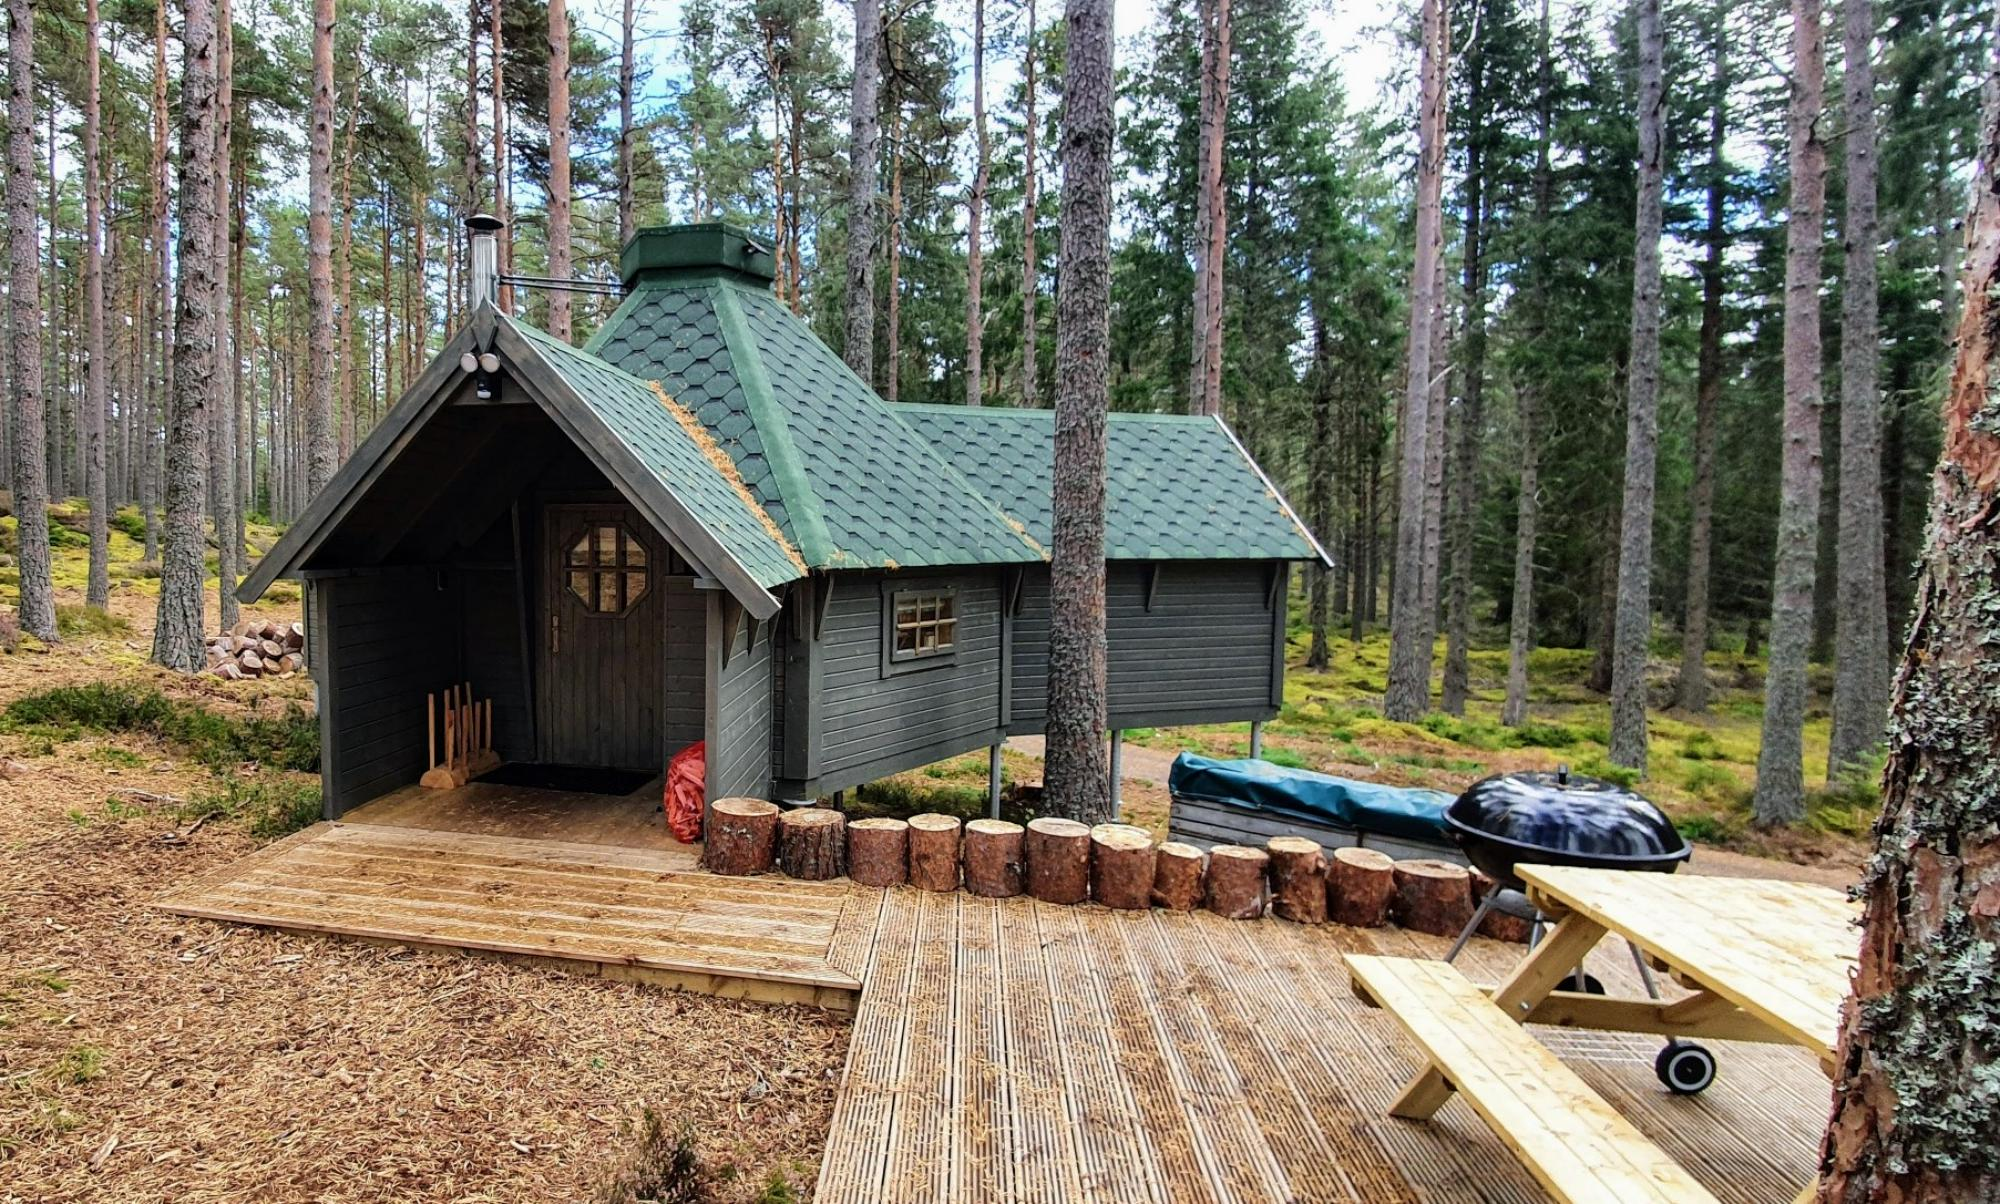 Self-Catering in Aberdeenshire holidays at Cool Places